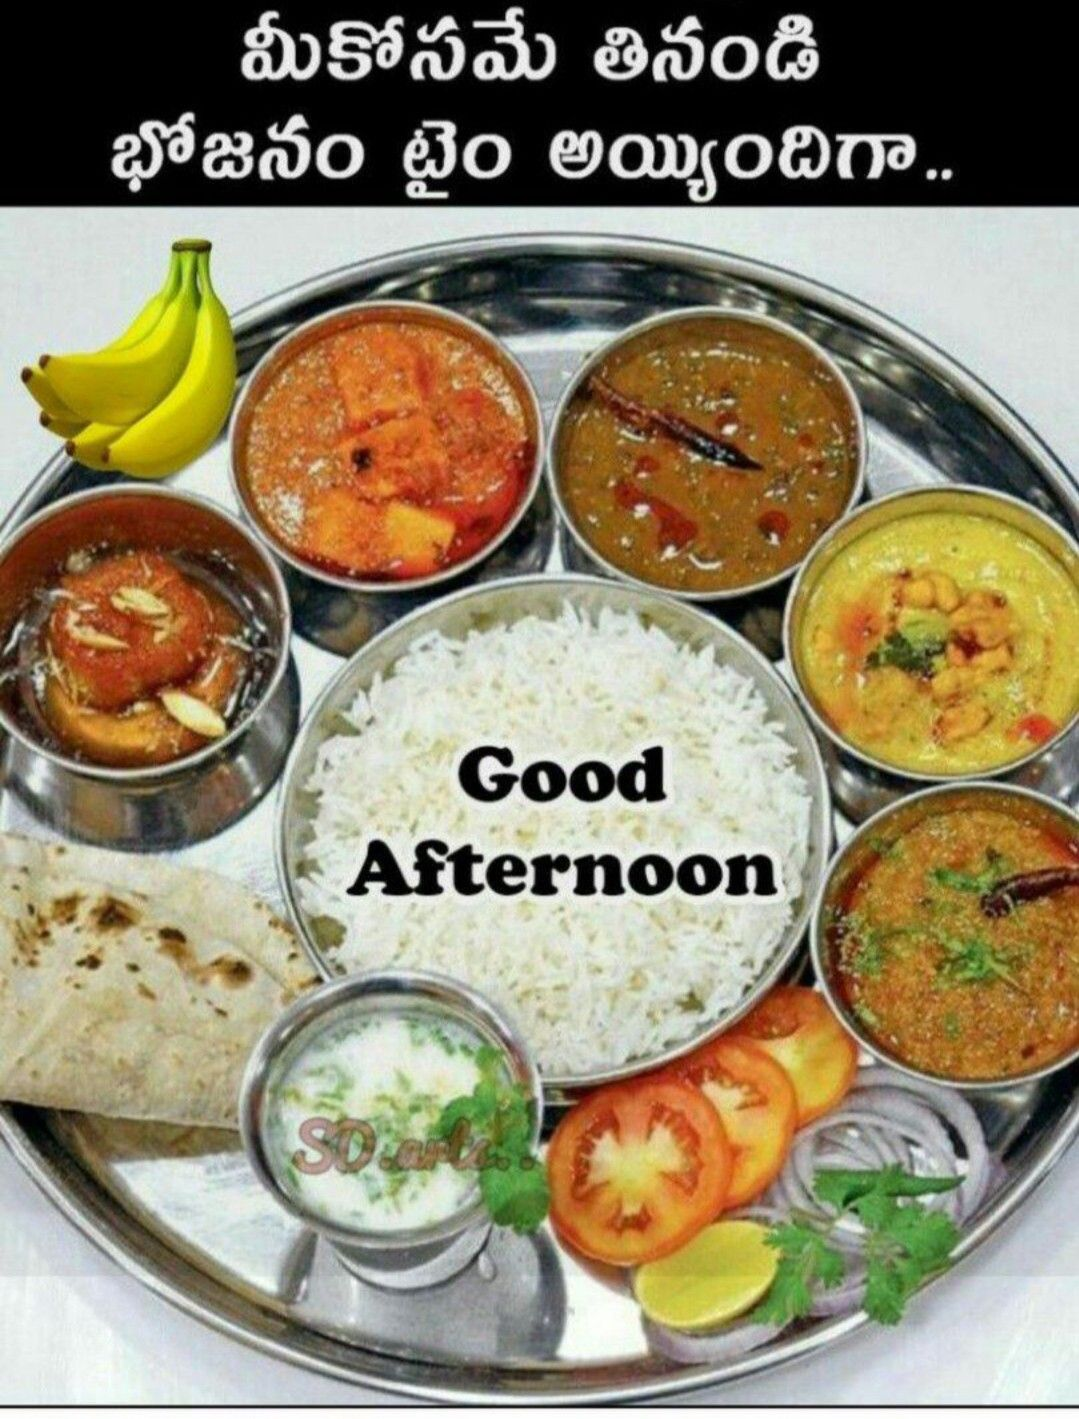 Indian food recipes image by Monika Moni on good afternoon ...